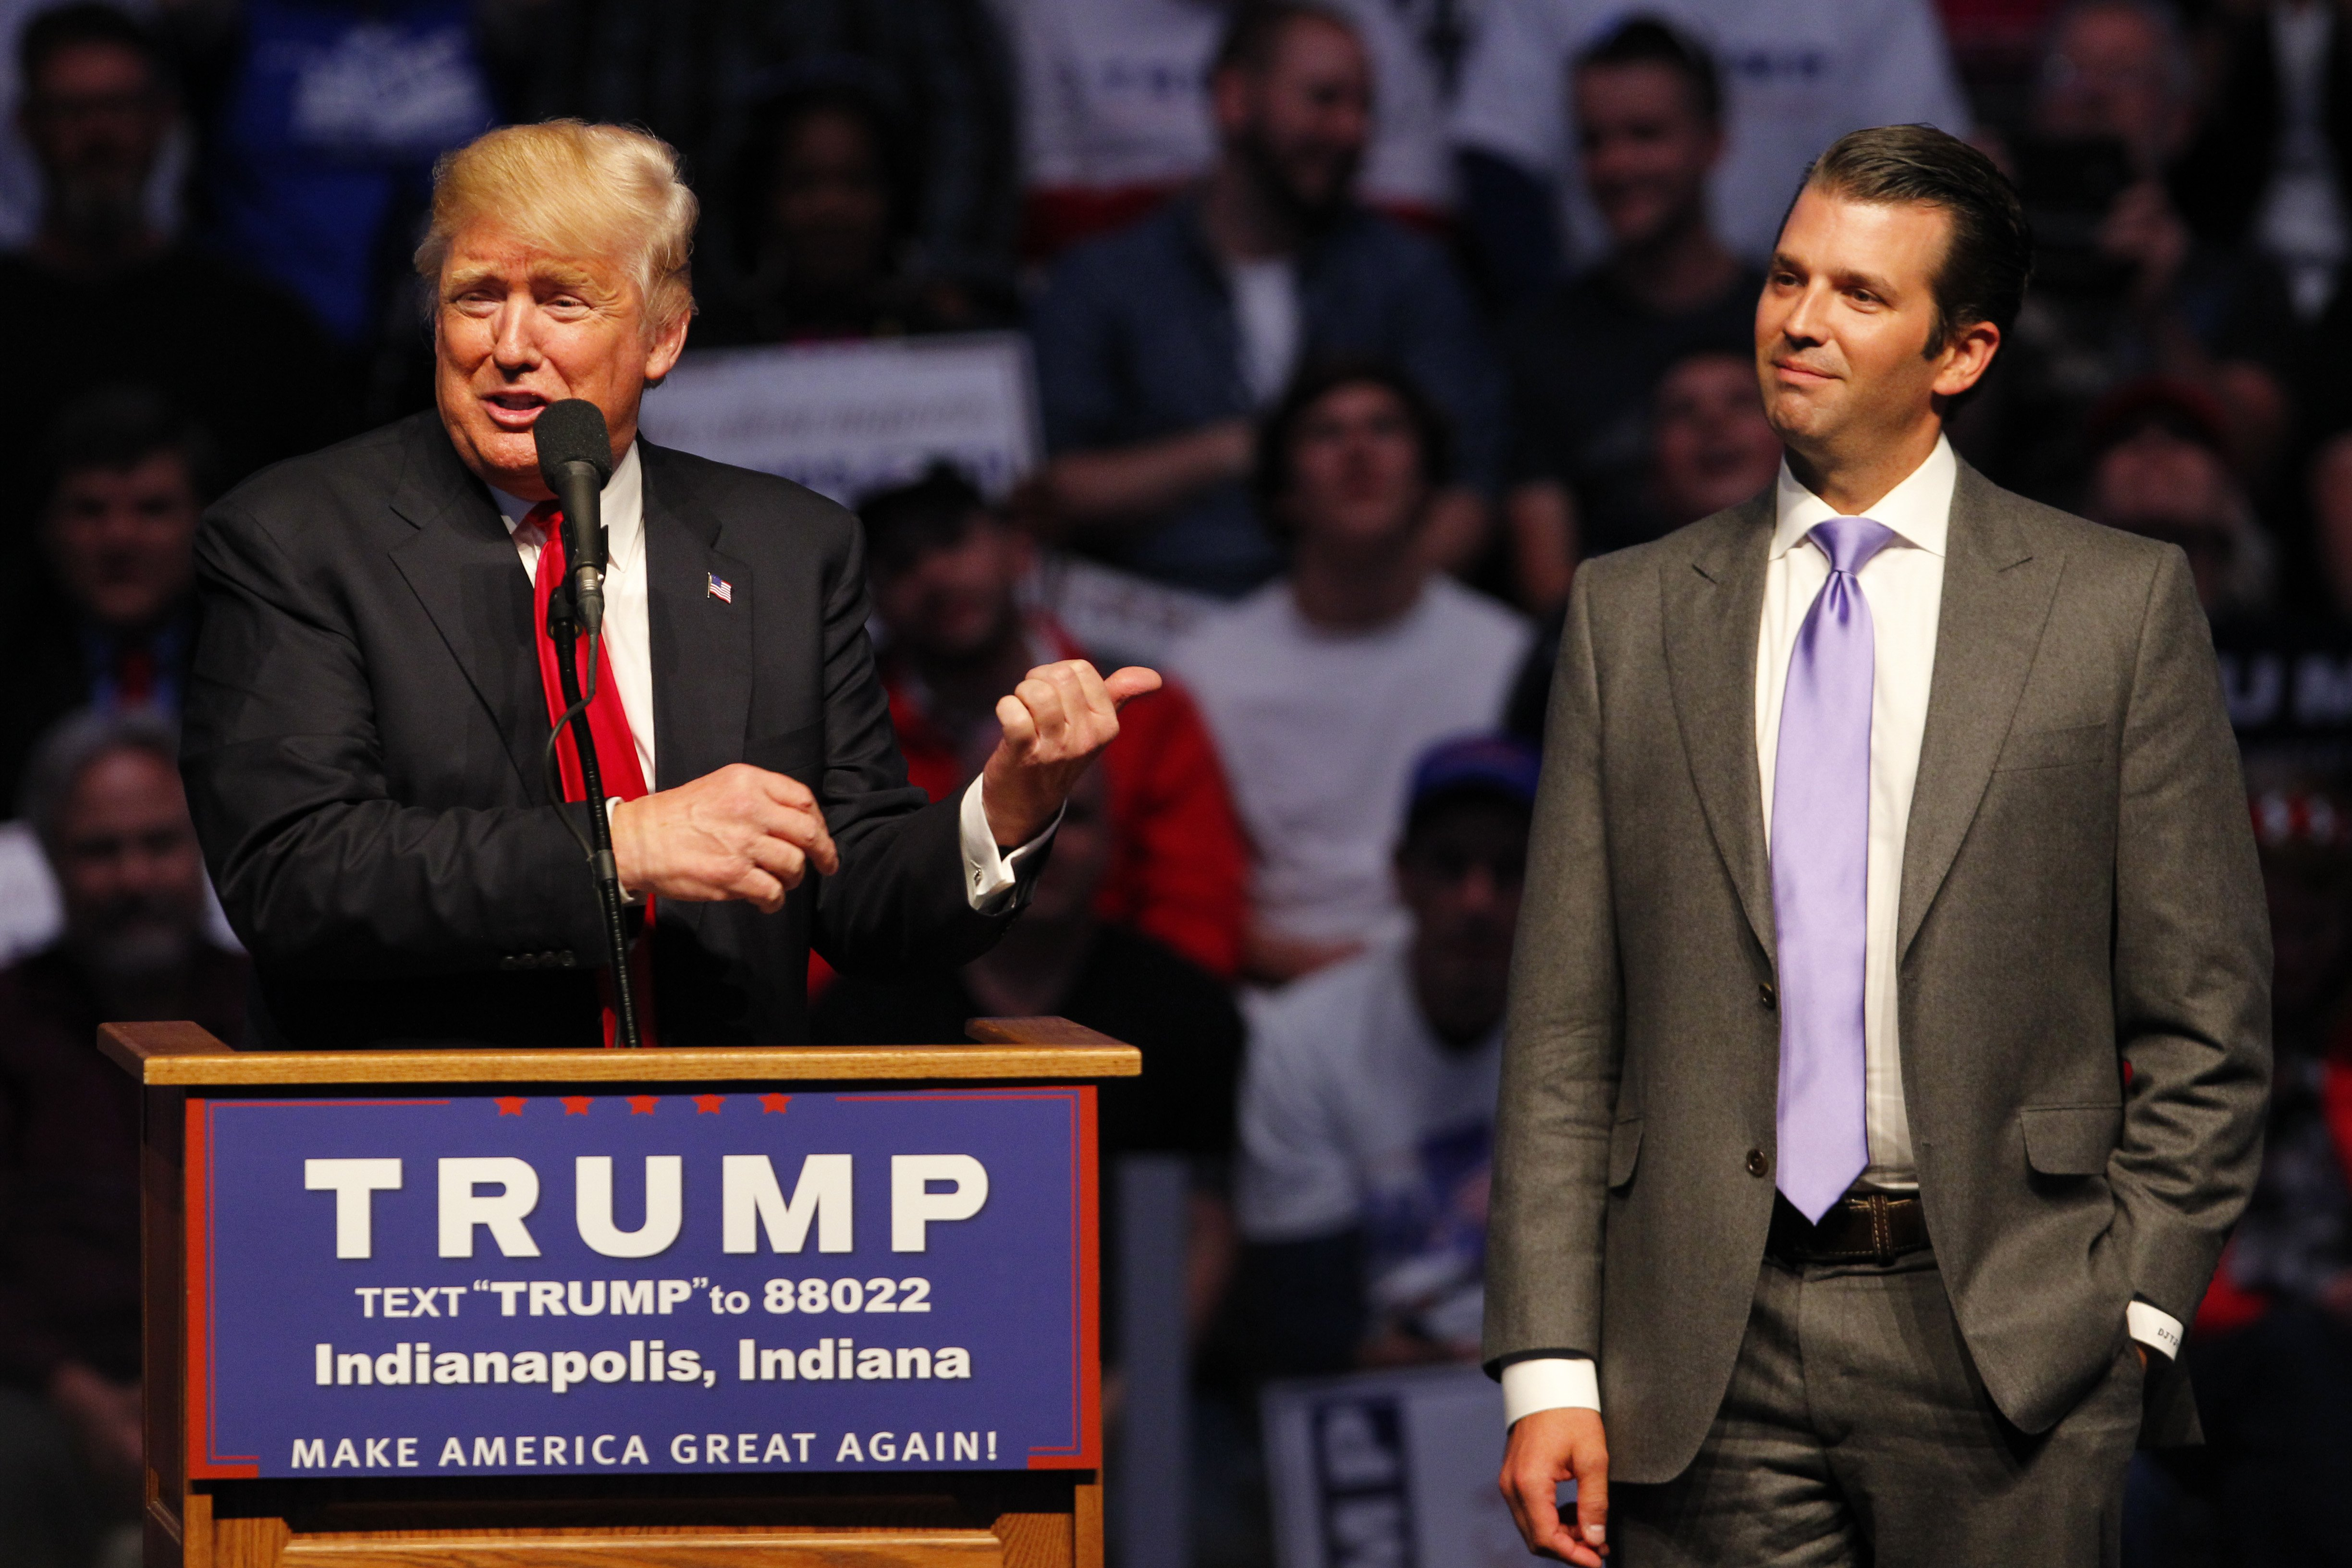 Donald Trump and his son Donald Trump Jr at a campaign rally in Indianapolis, Indiana on April 27, 2016   Photo: Getty Images